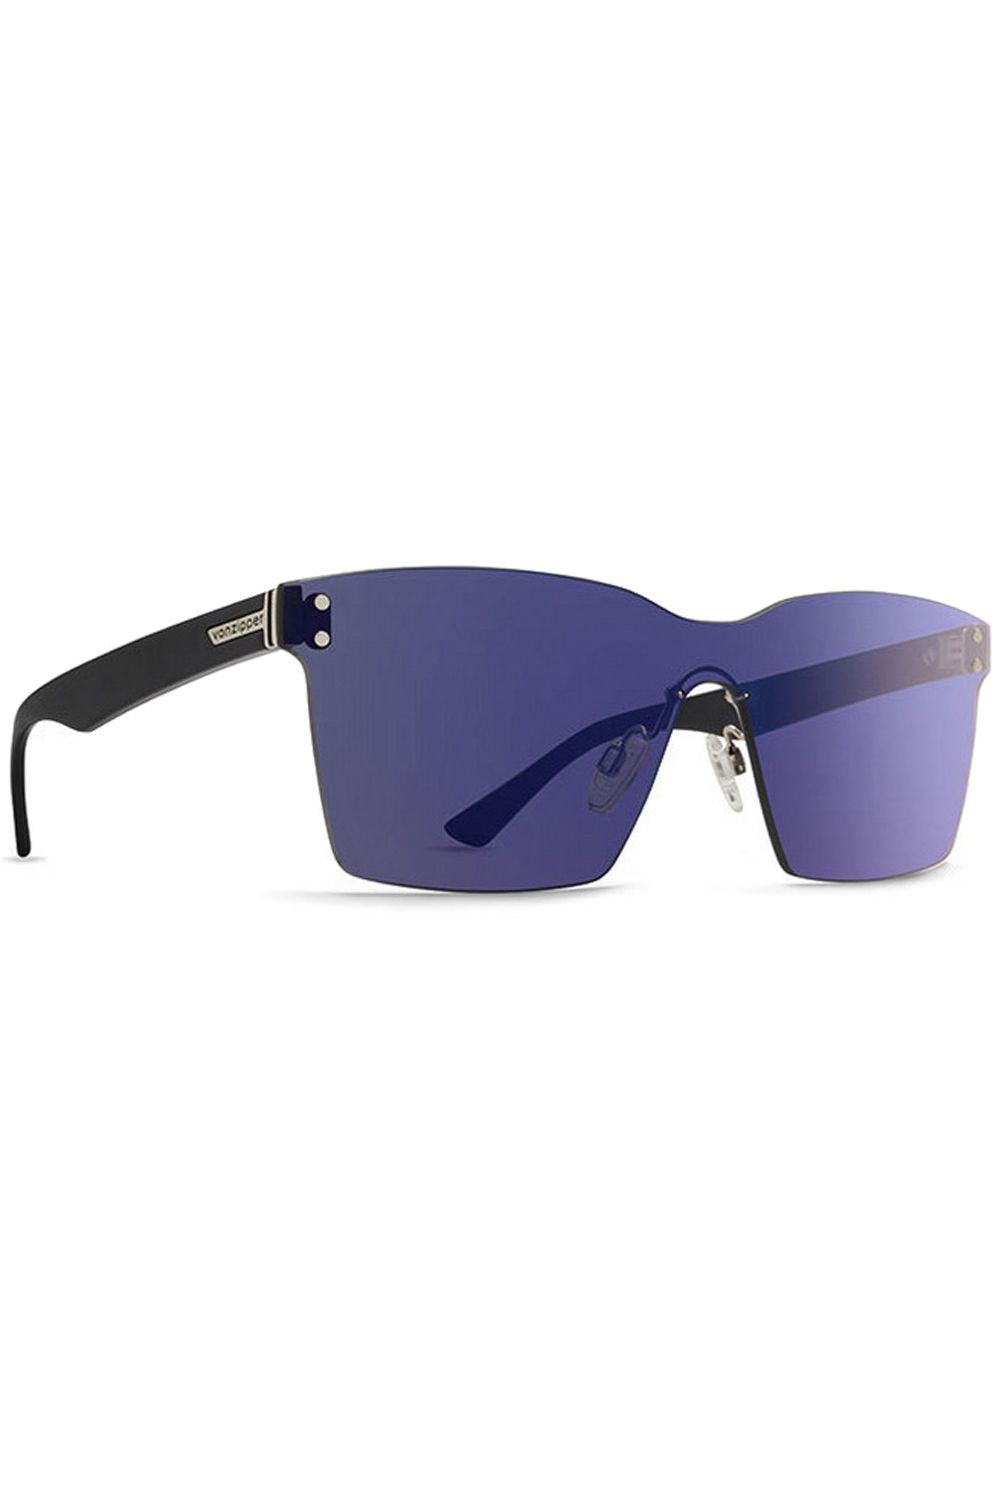 Oculos VonZipper ALT LESMORE Black Gloss (arms) / Flash Chrome Blue